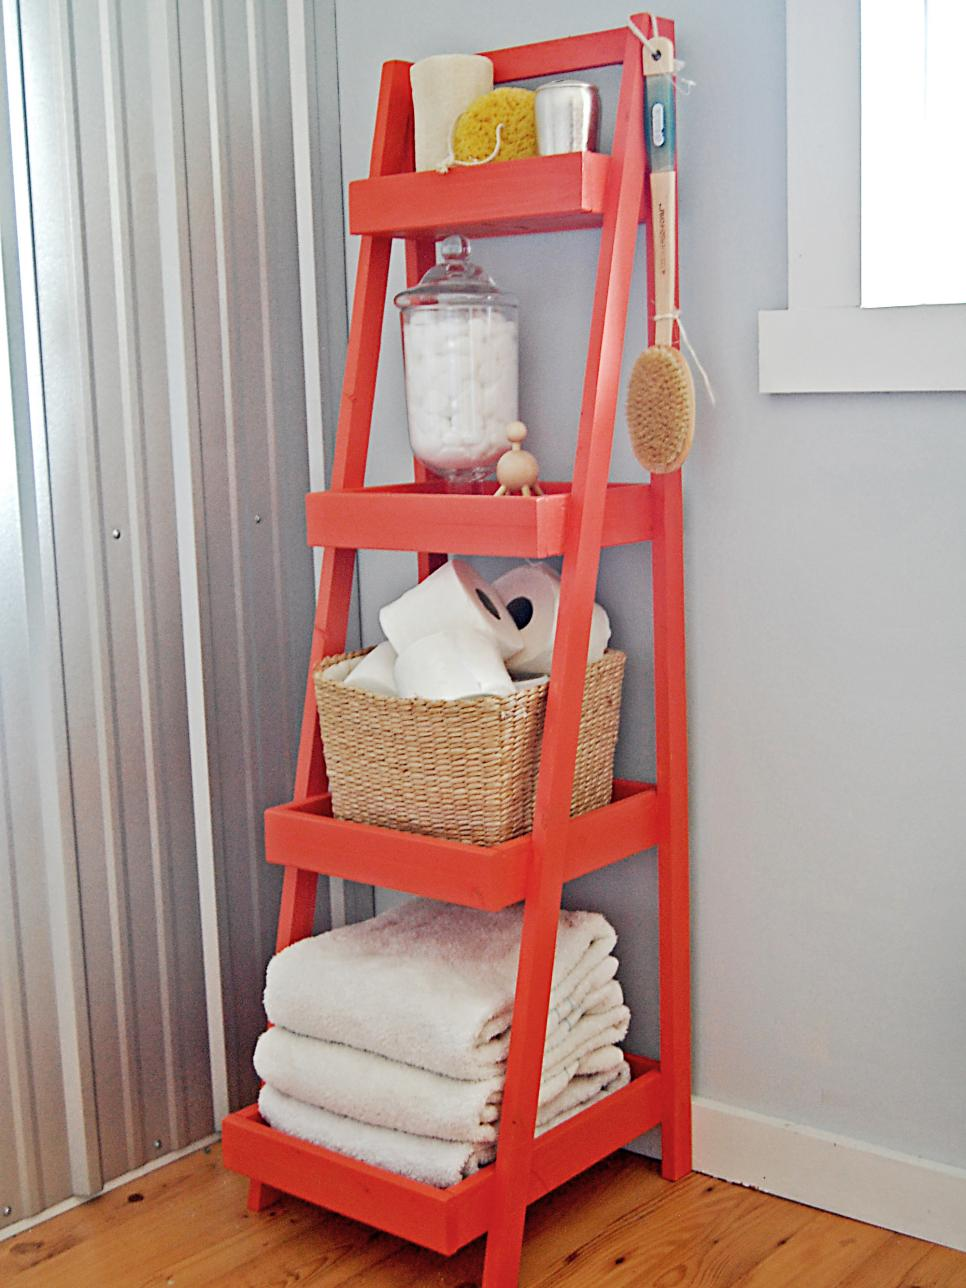 ladders are very useful to organize an open storage in a bathroom